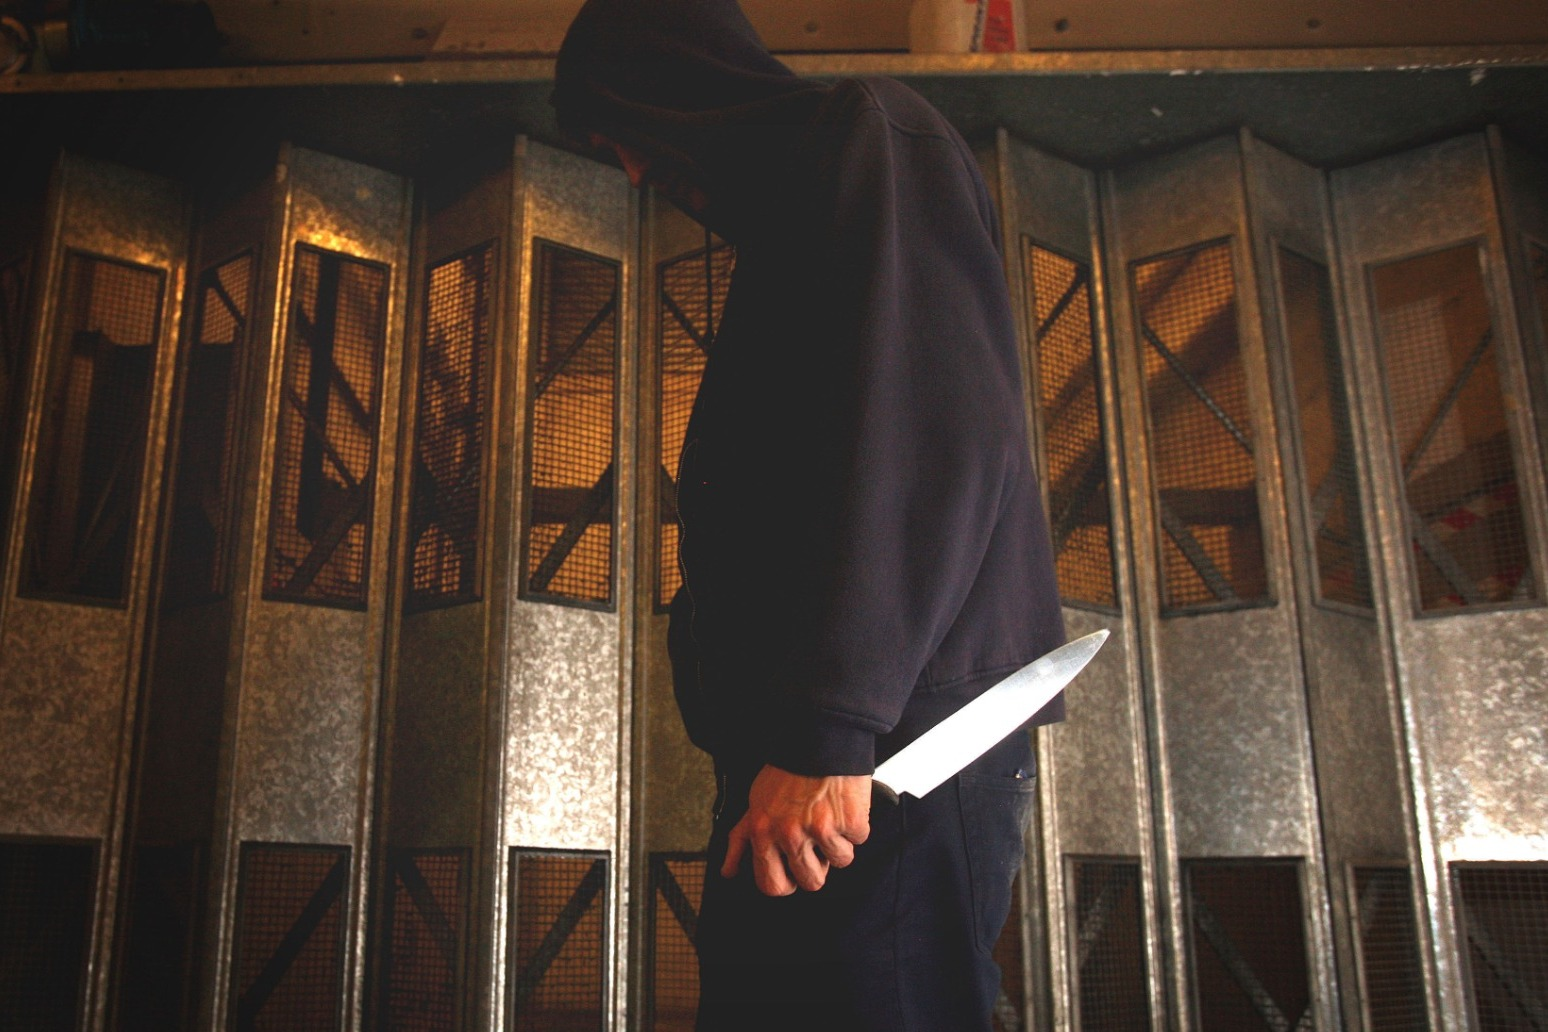 Stop and search could save girls from being groomed, says ex-gang member